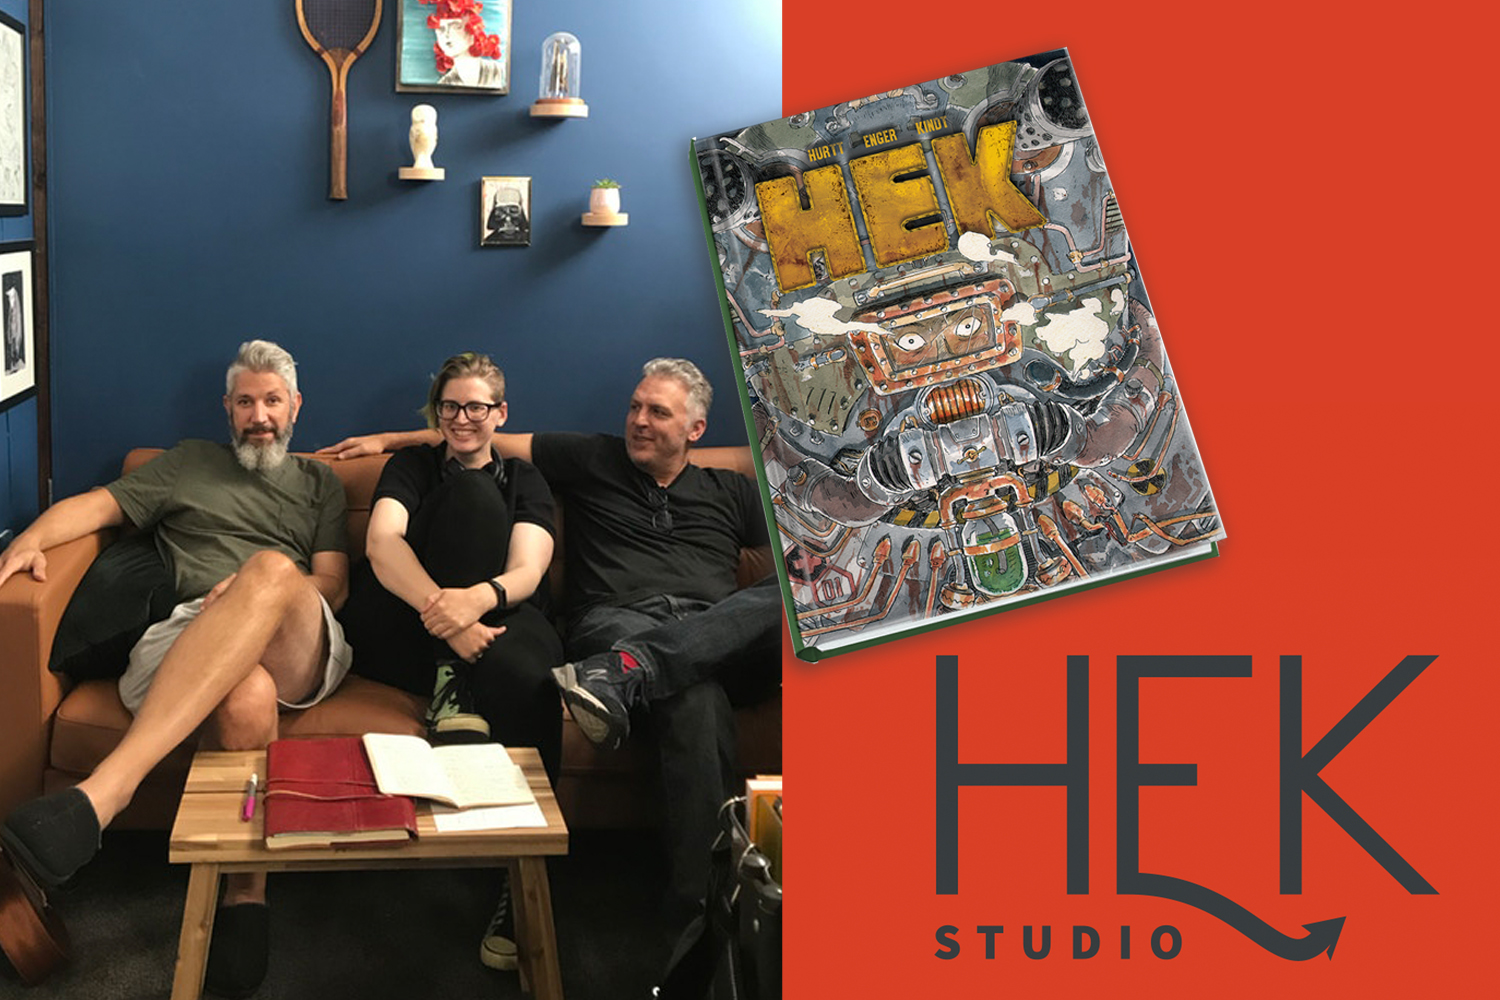 Welcome to HEK: Brian Hurt, Marie Enger, and Matt Kindt talk creating new kinds of comic stories